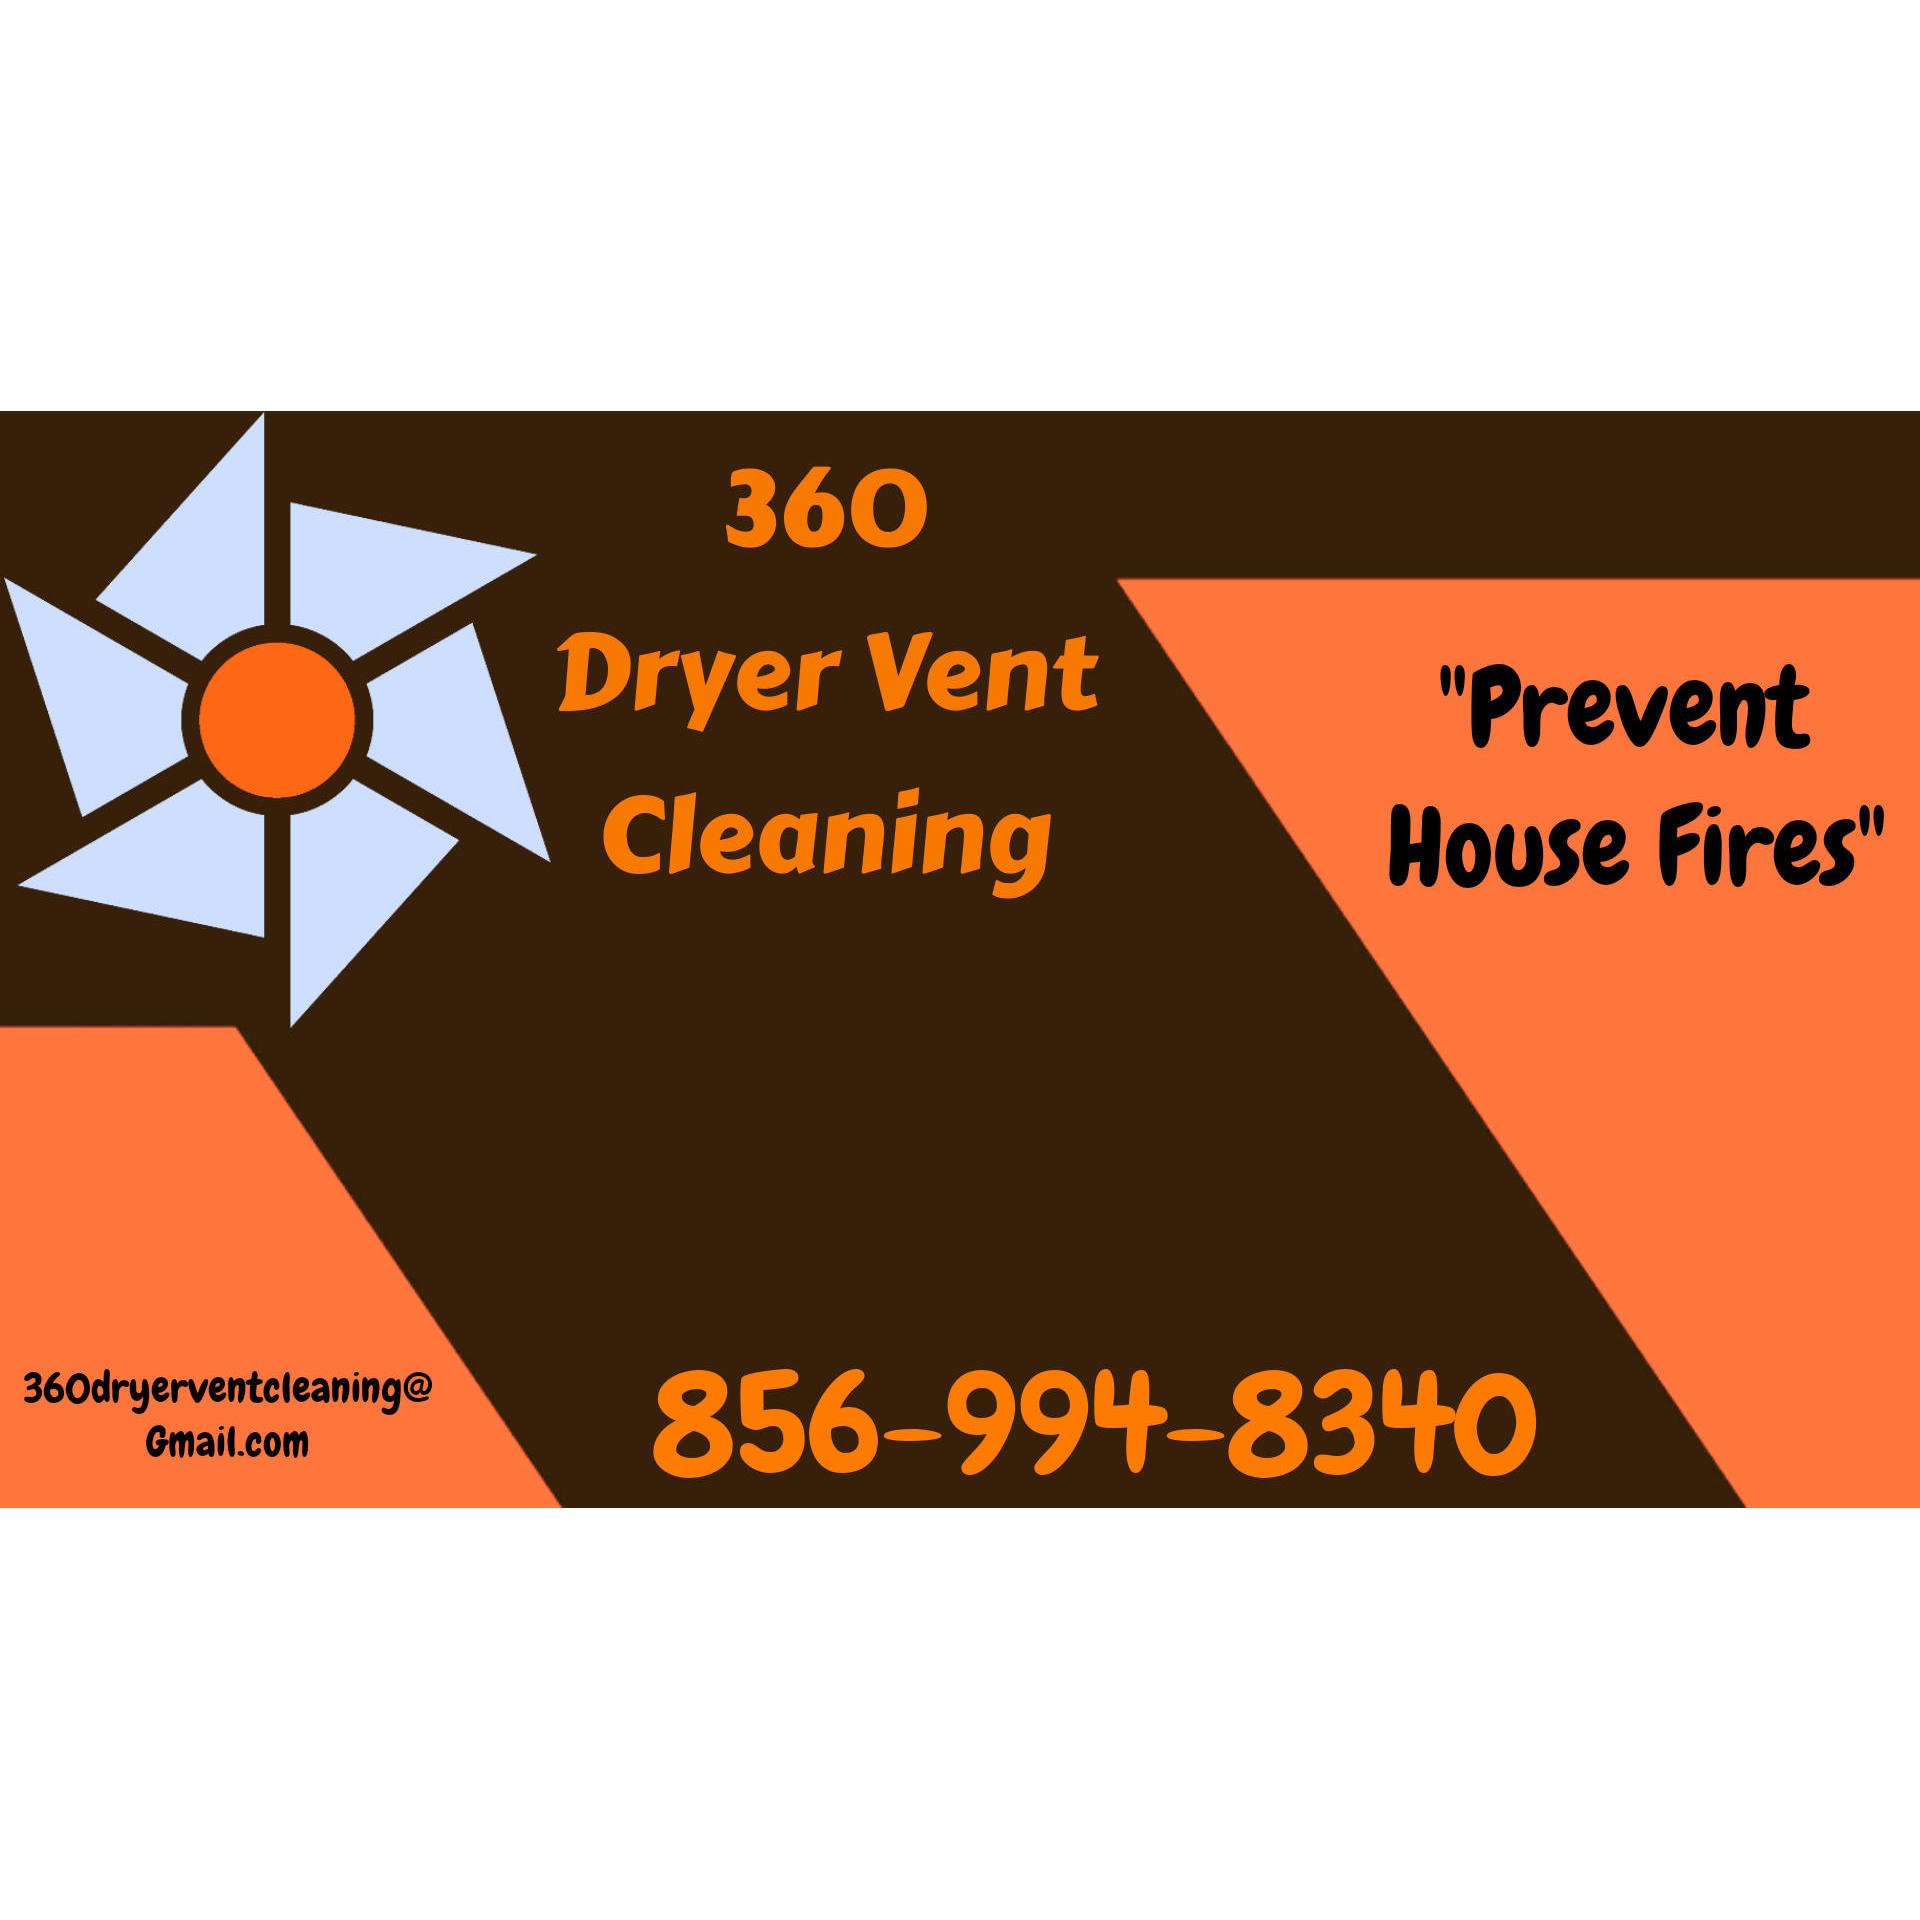 360  Dryer Vent Cleaning